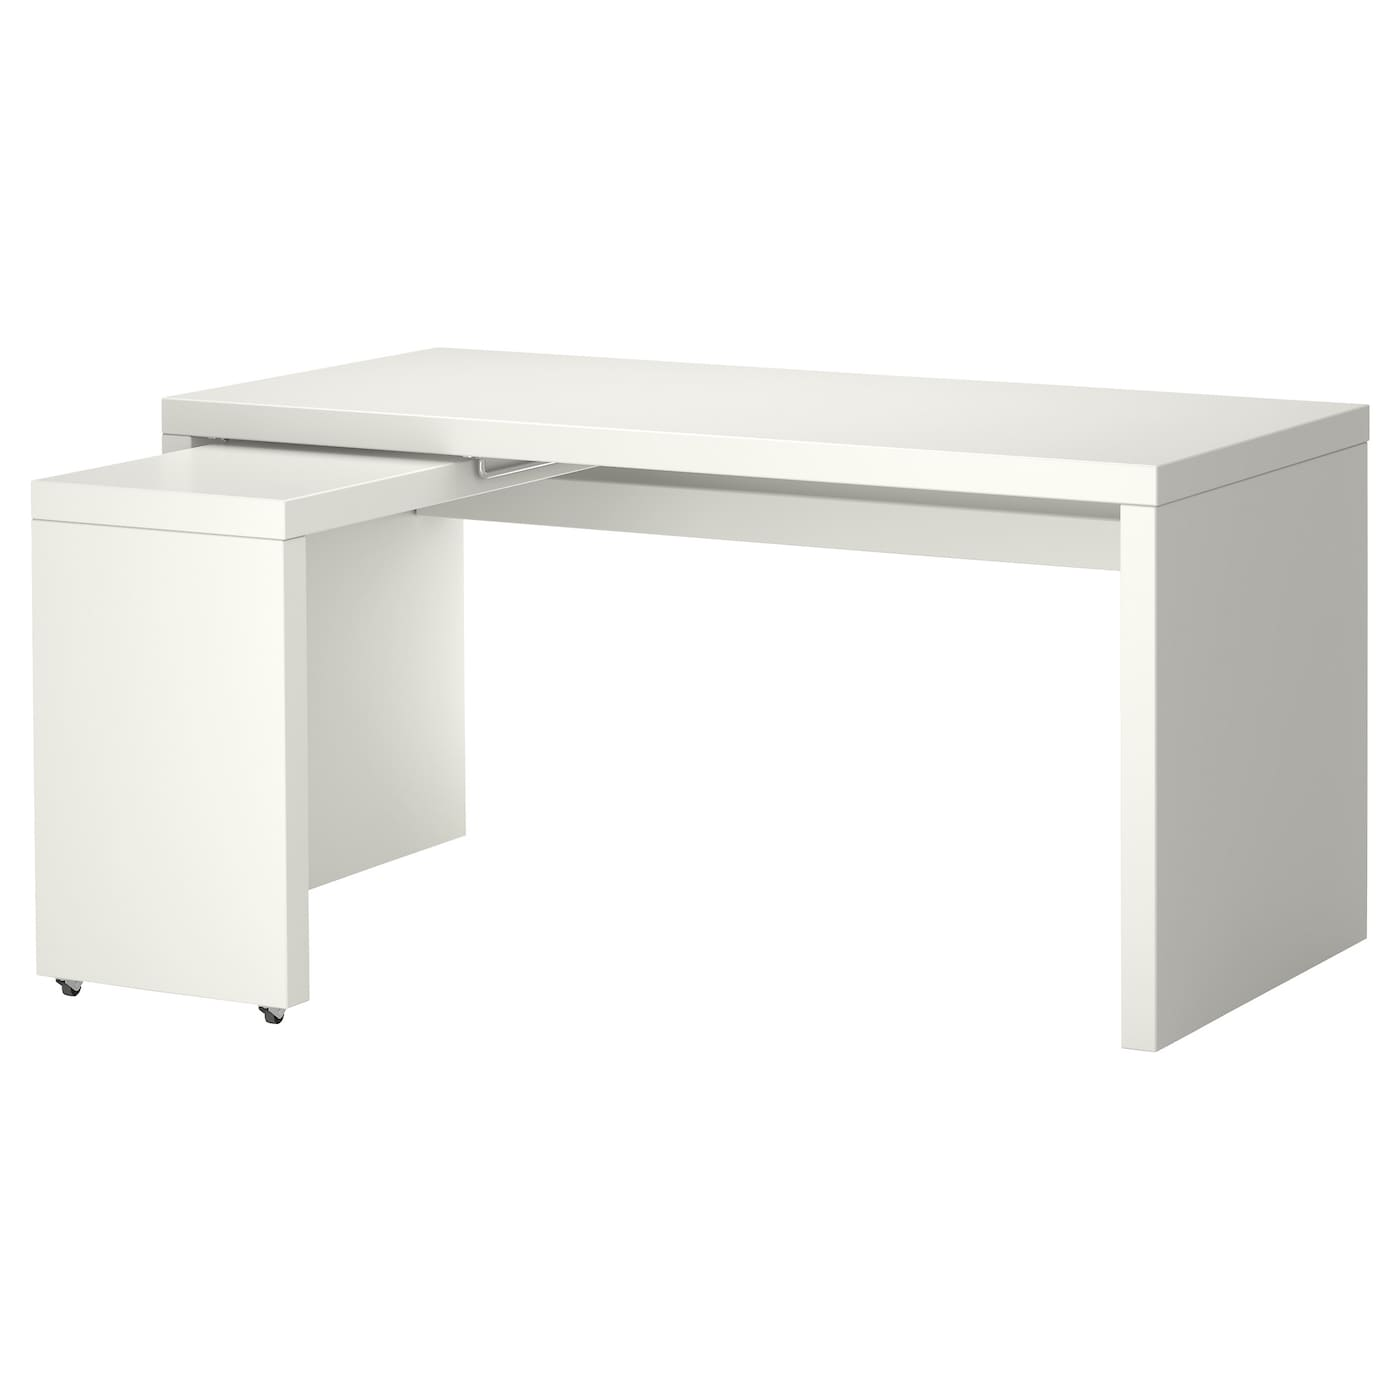 IKEA MALM desk with pull-out panel The pull-out panel gives you an